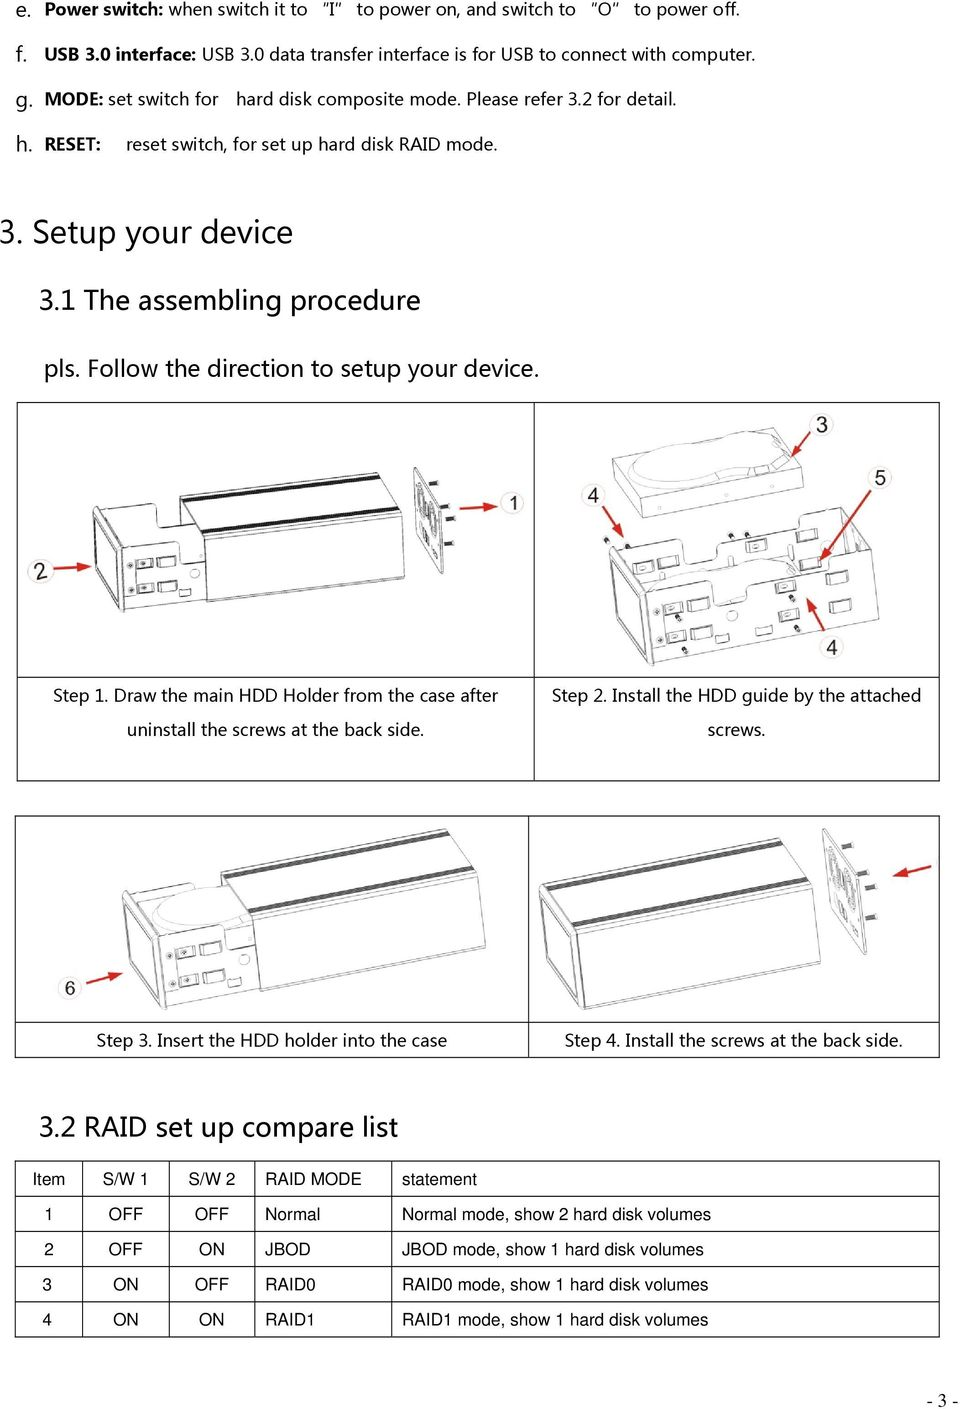 Follow the direction to setup your device. Step 1. Draw the main HDD Holder from the case after uninstall the screws at the back side. Step 2. Install the HDD guide by the attached screws. Step 3.